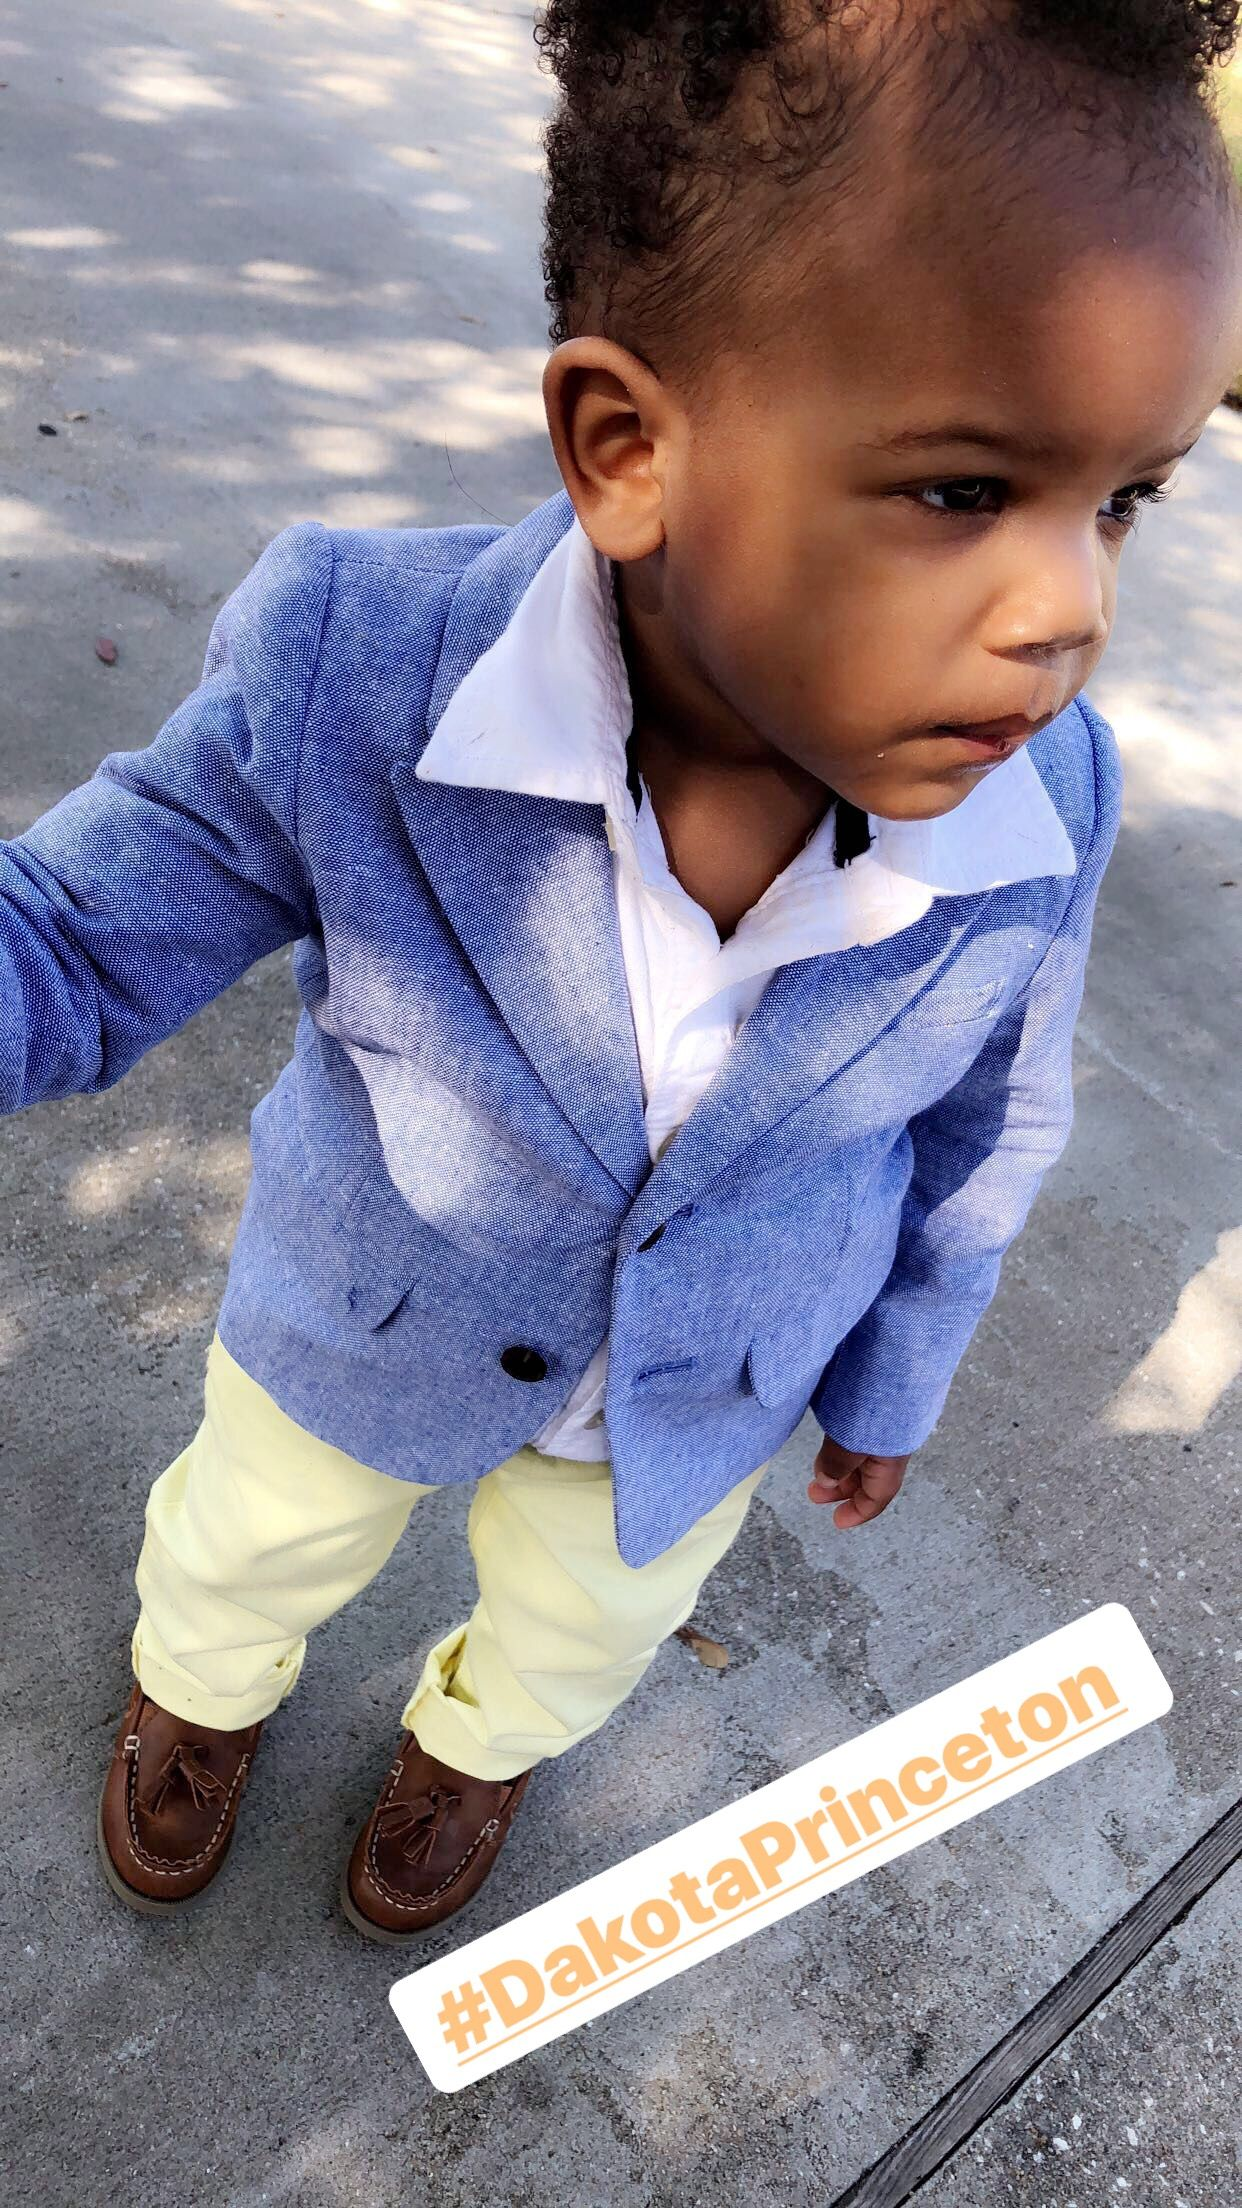 25d4e0de349 Toddler outfit toddler boy outfit fashion ideas fashion baby boy fashion  trendy kids toddler blazer Easter yellow pants penny loafers